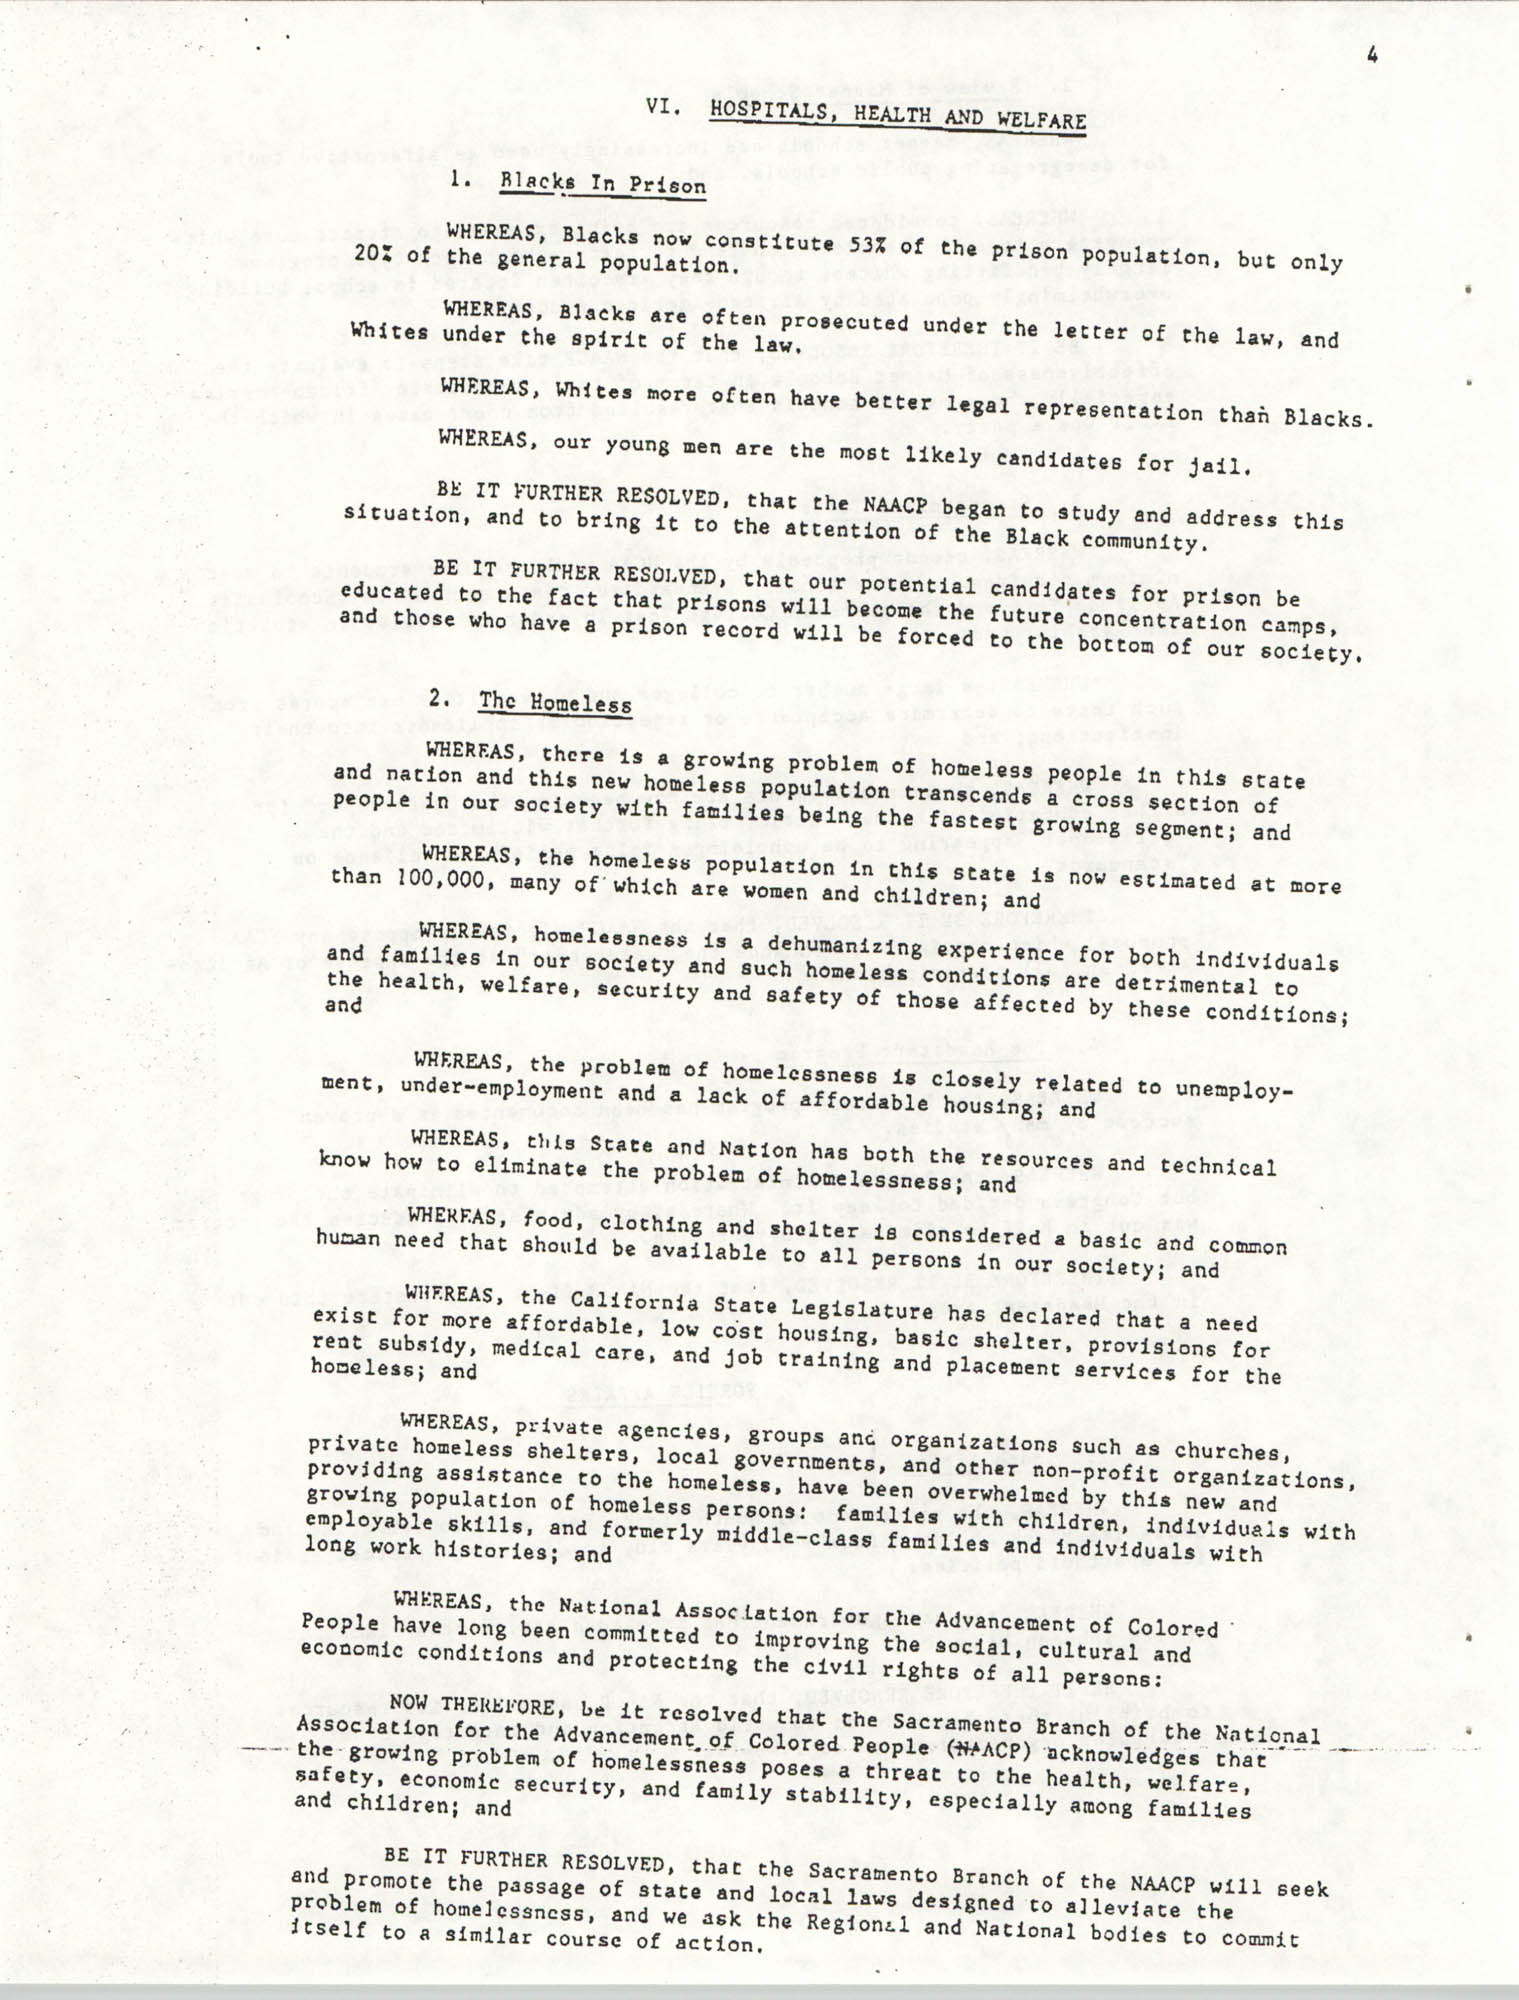 Resolutions Submitted Under Article X, Section 2 of the Constitution of the NAACP, Page 4